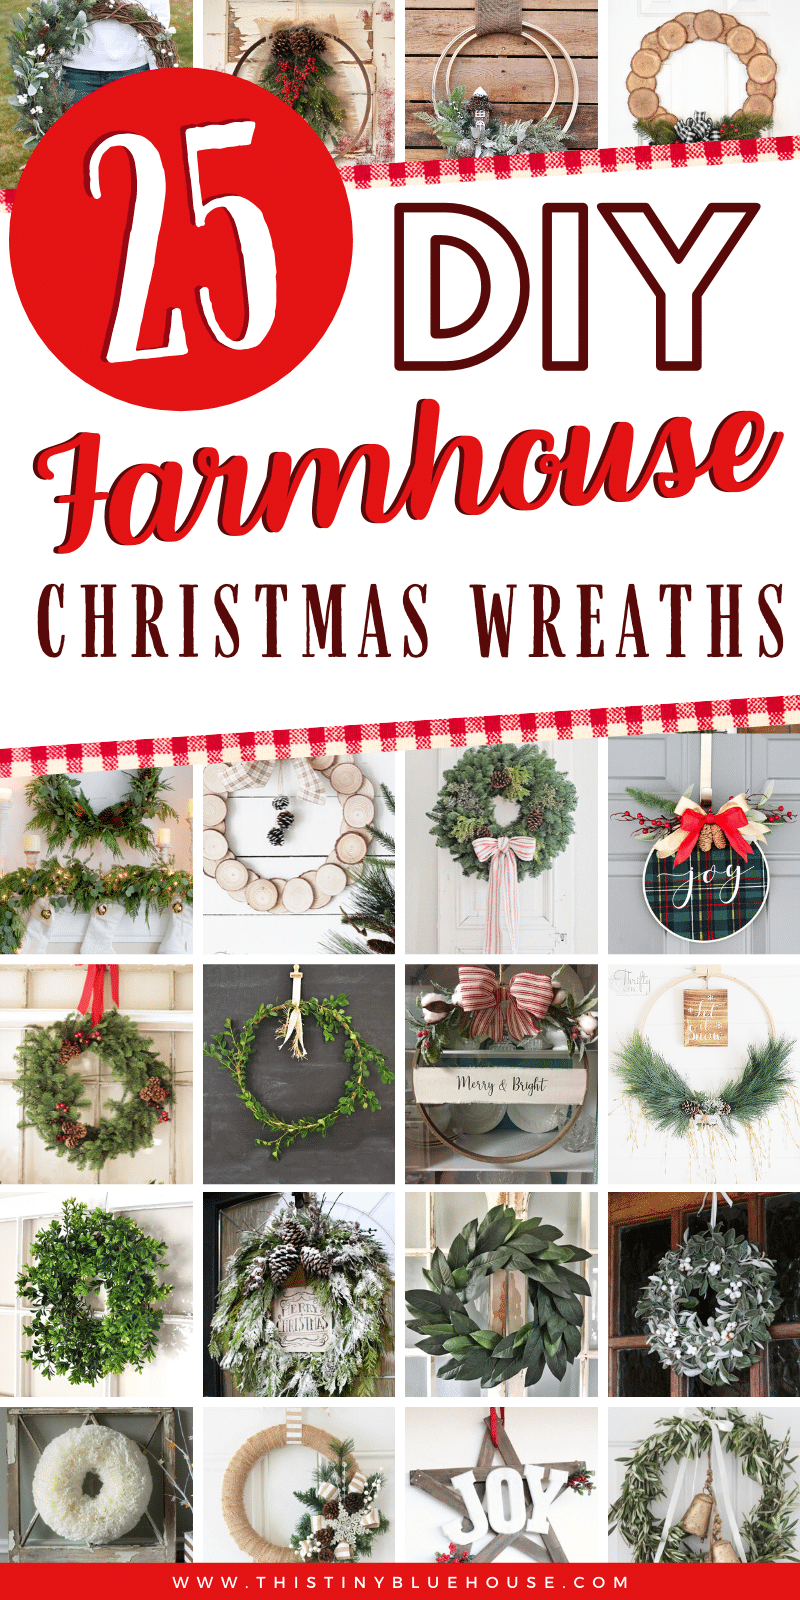 Get your front door holiday ready with one of the Farmhouse Christmas Wreath DIYs. Cheap and easy to make these wreaths make a stunning addition to your modern farmhouse home. #farmhousechristmaswreaths #DIYFarmhouseChristmasWreaths #DIYChristmasWreathsFarmhouse #EasyFarmhouseChristmasWreath